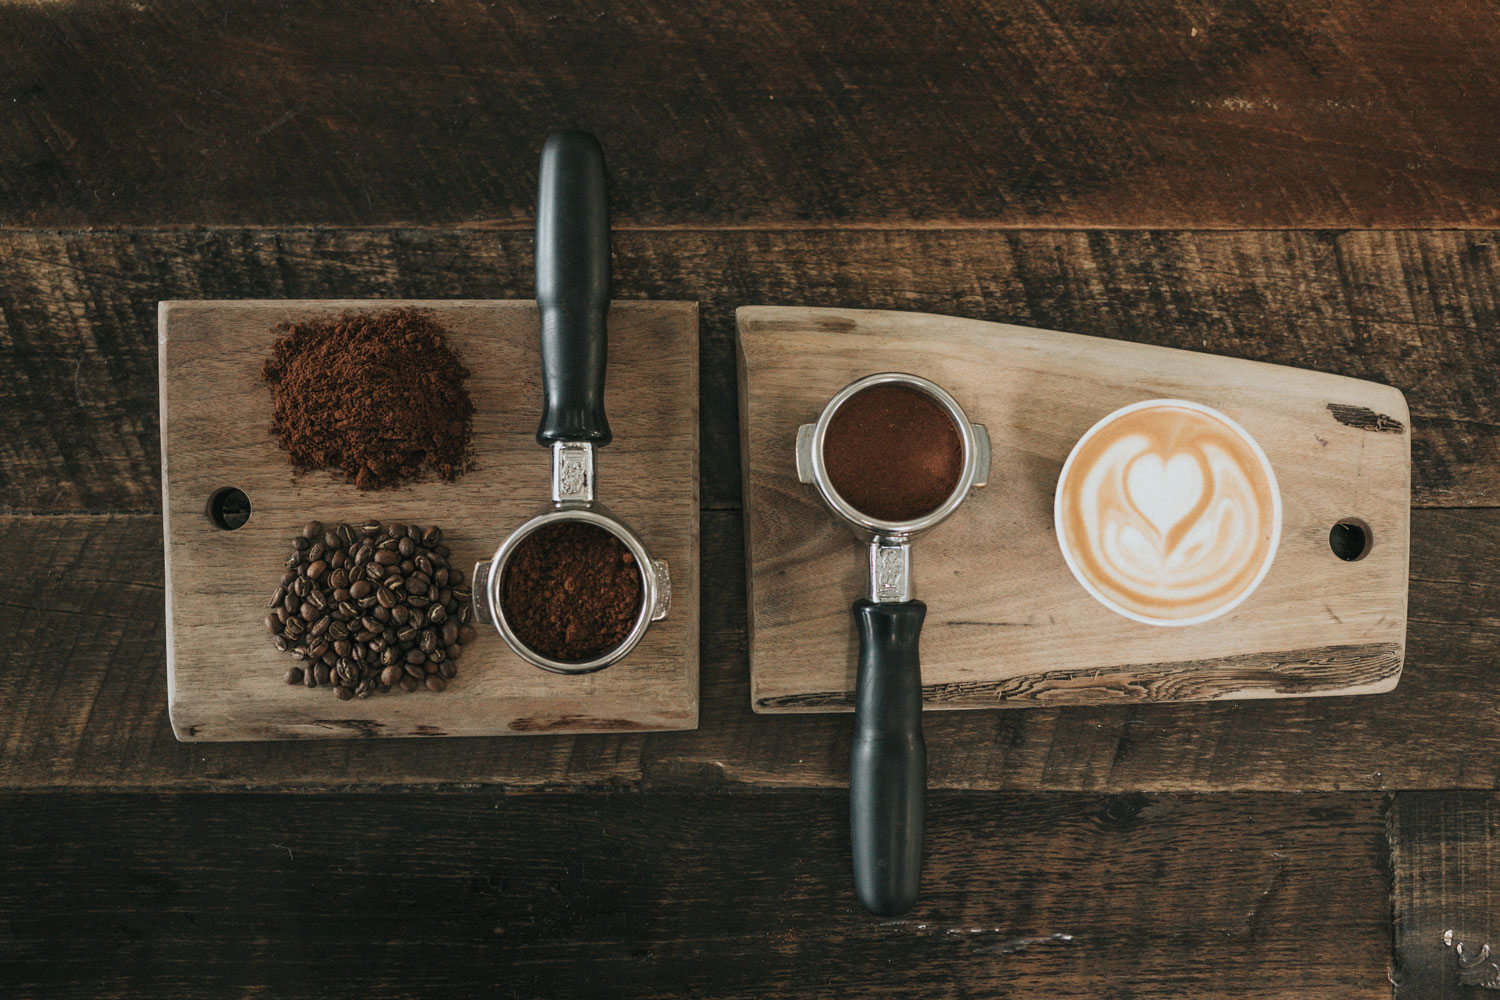 coffee beans and ground placed across a table